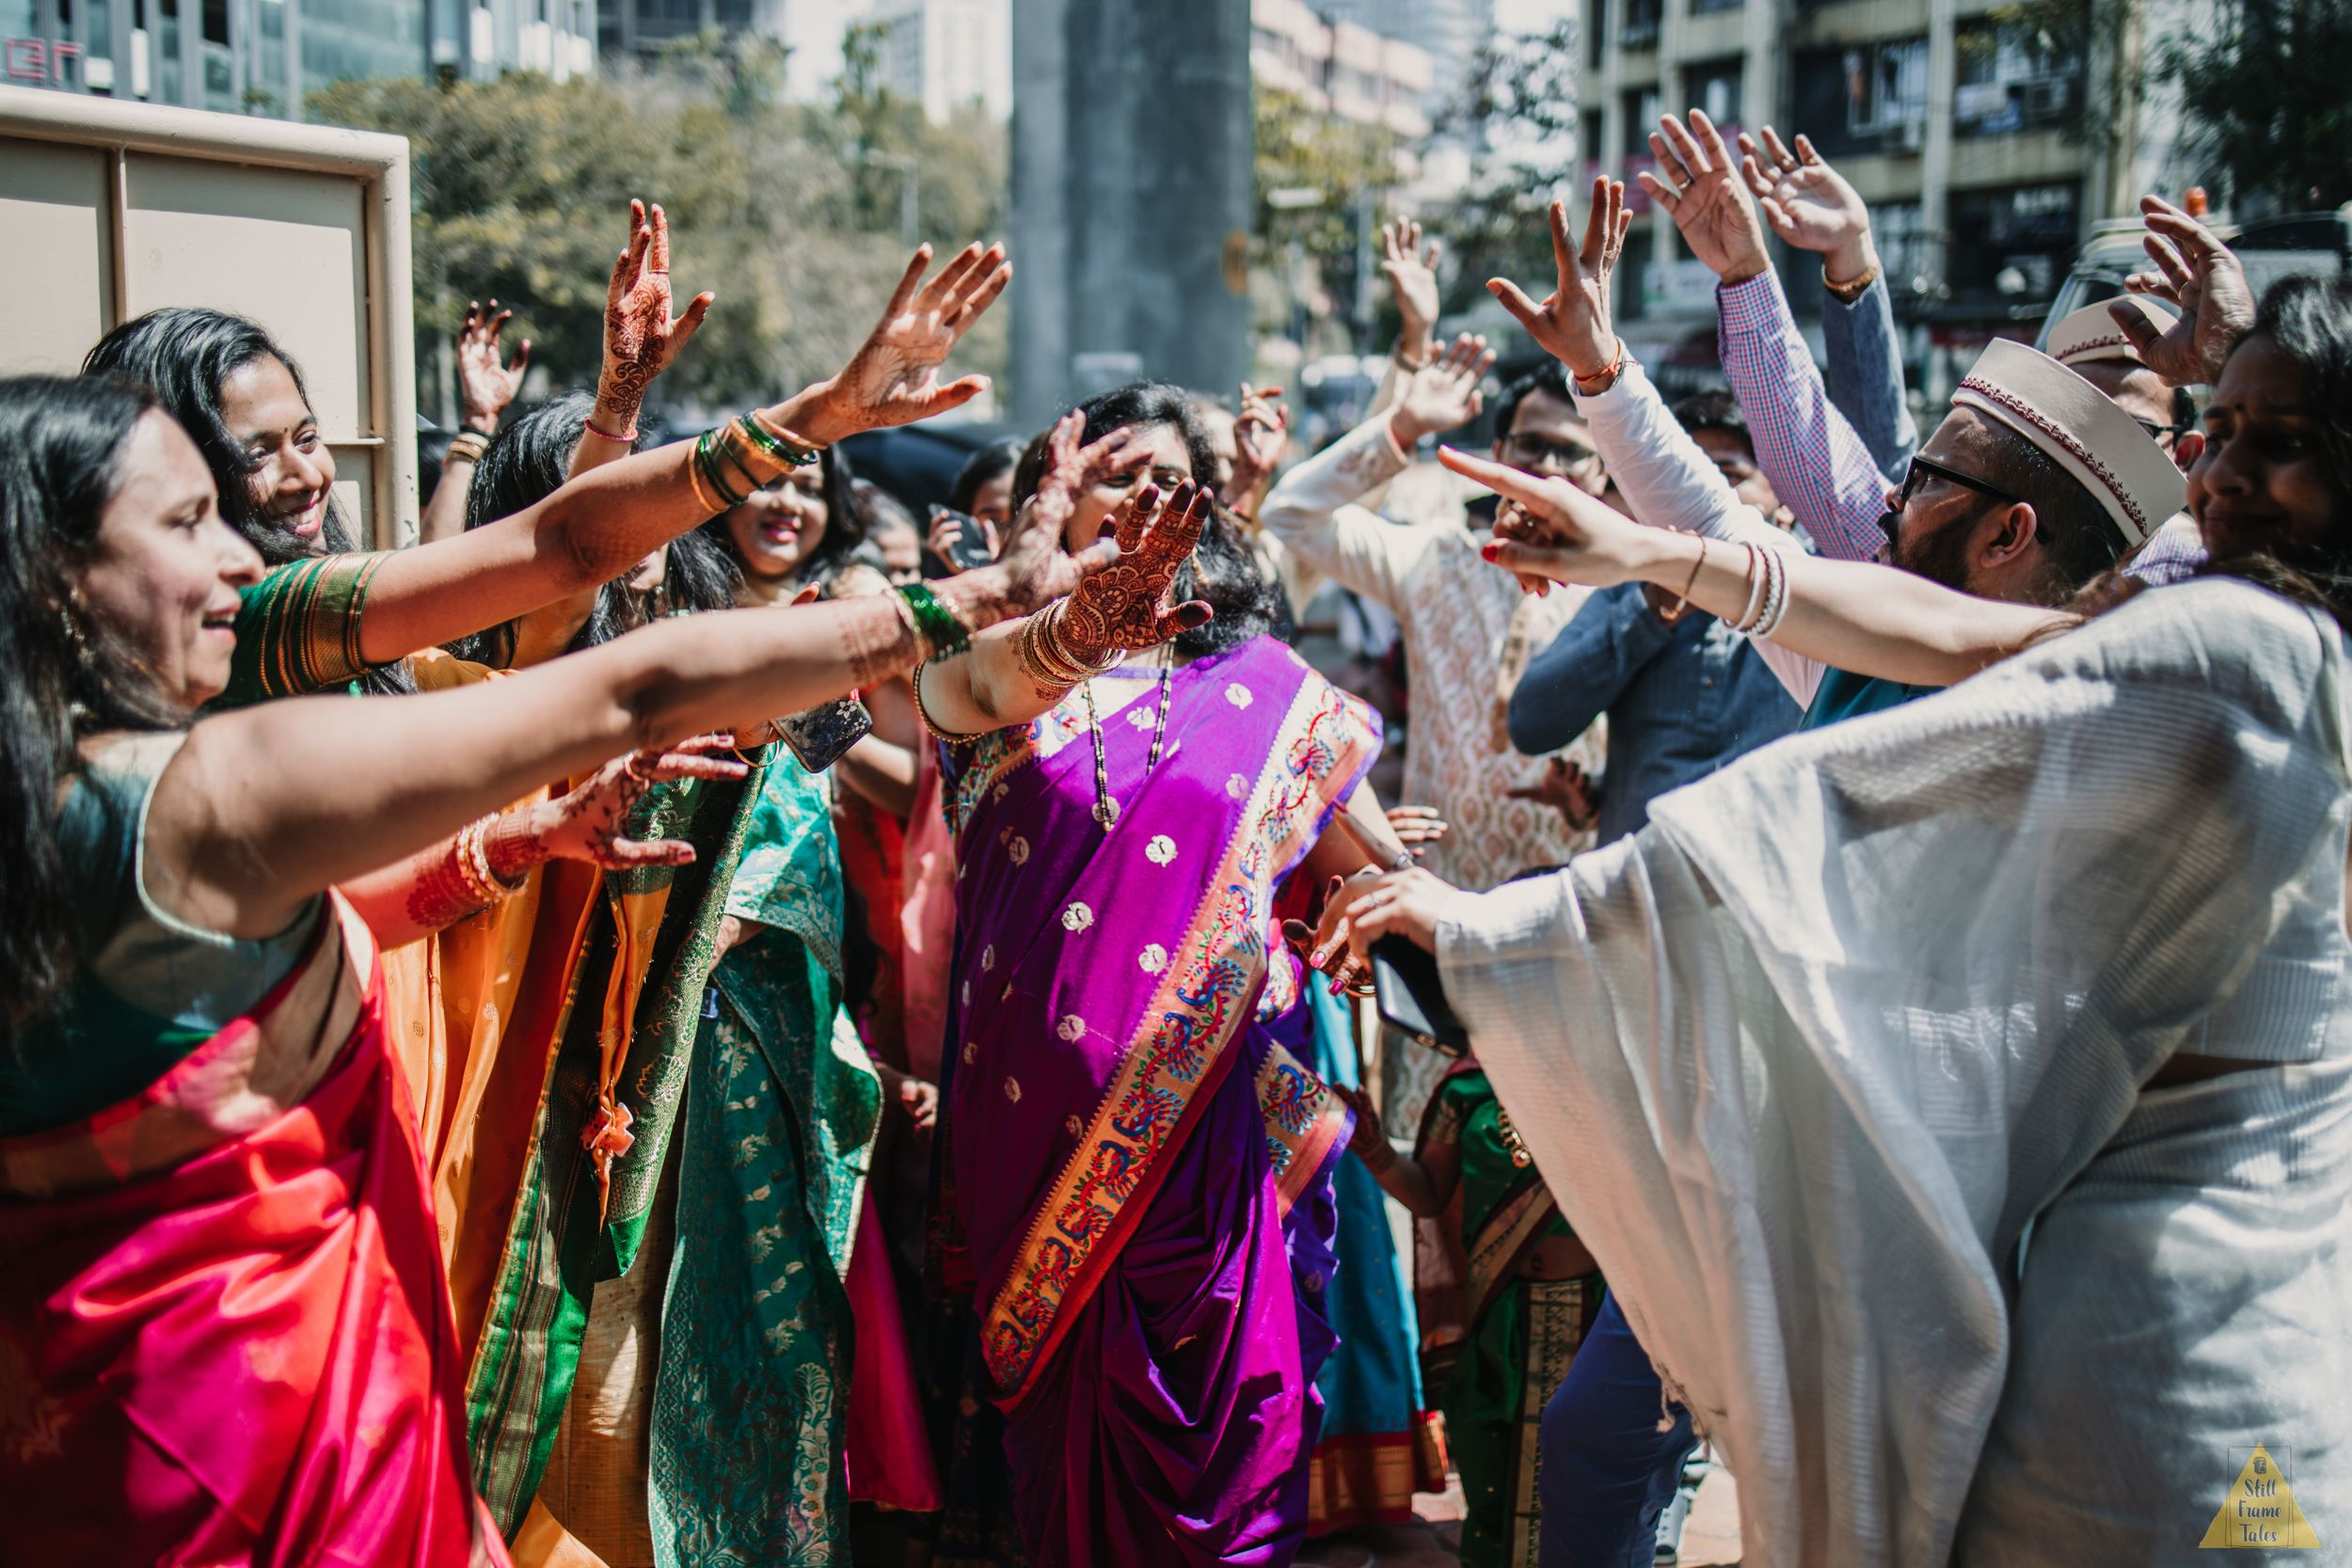 Friends & family dancing together in sun light during a Indian wedding